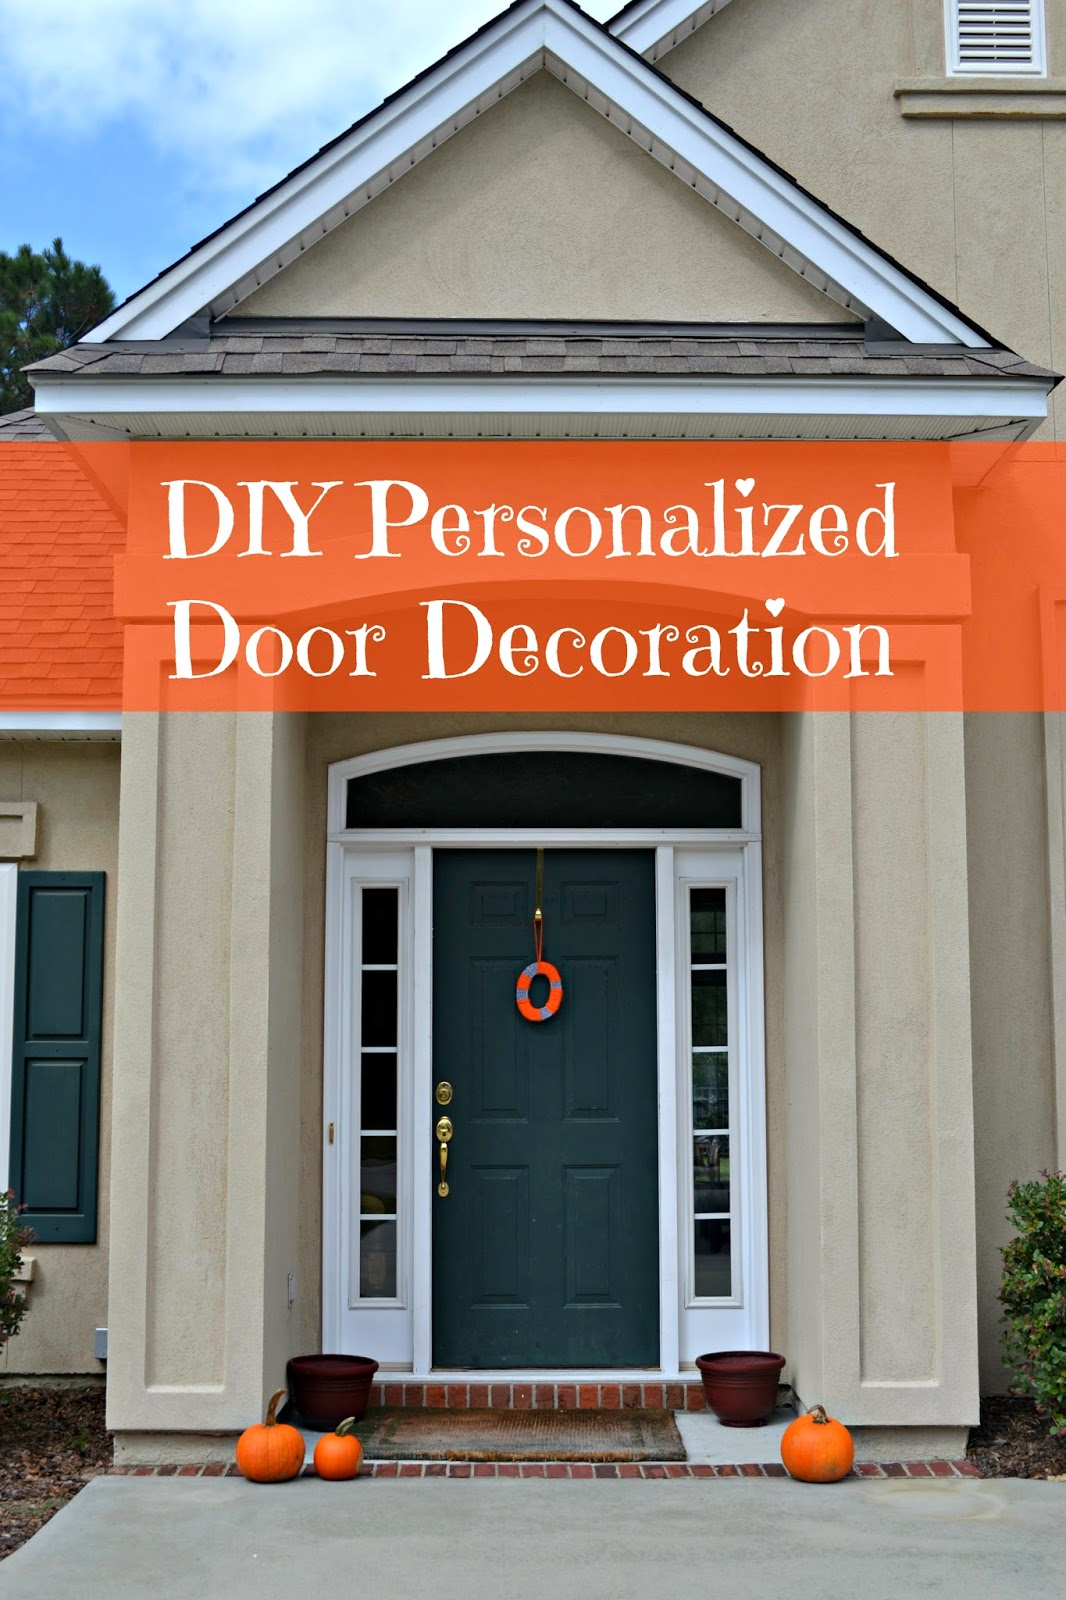 Personalized front door decorations - With A Few Simple Supplies And About 20 Minutes You Can Have A Fun Seasonal Decoration Hanging From Your Front Door